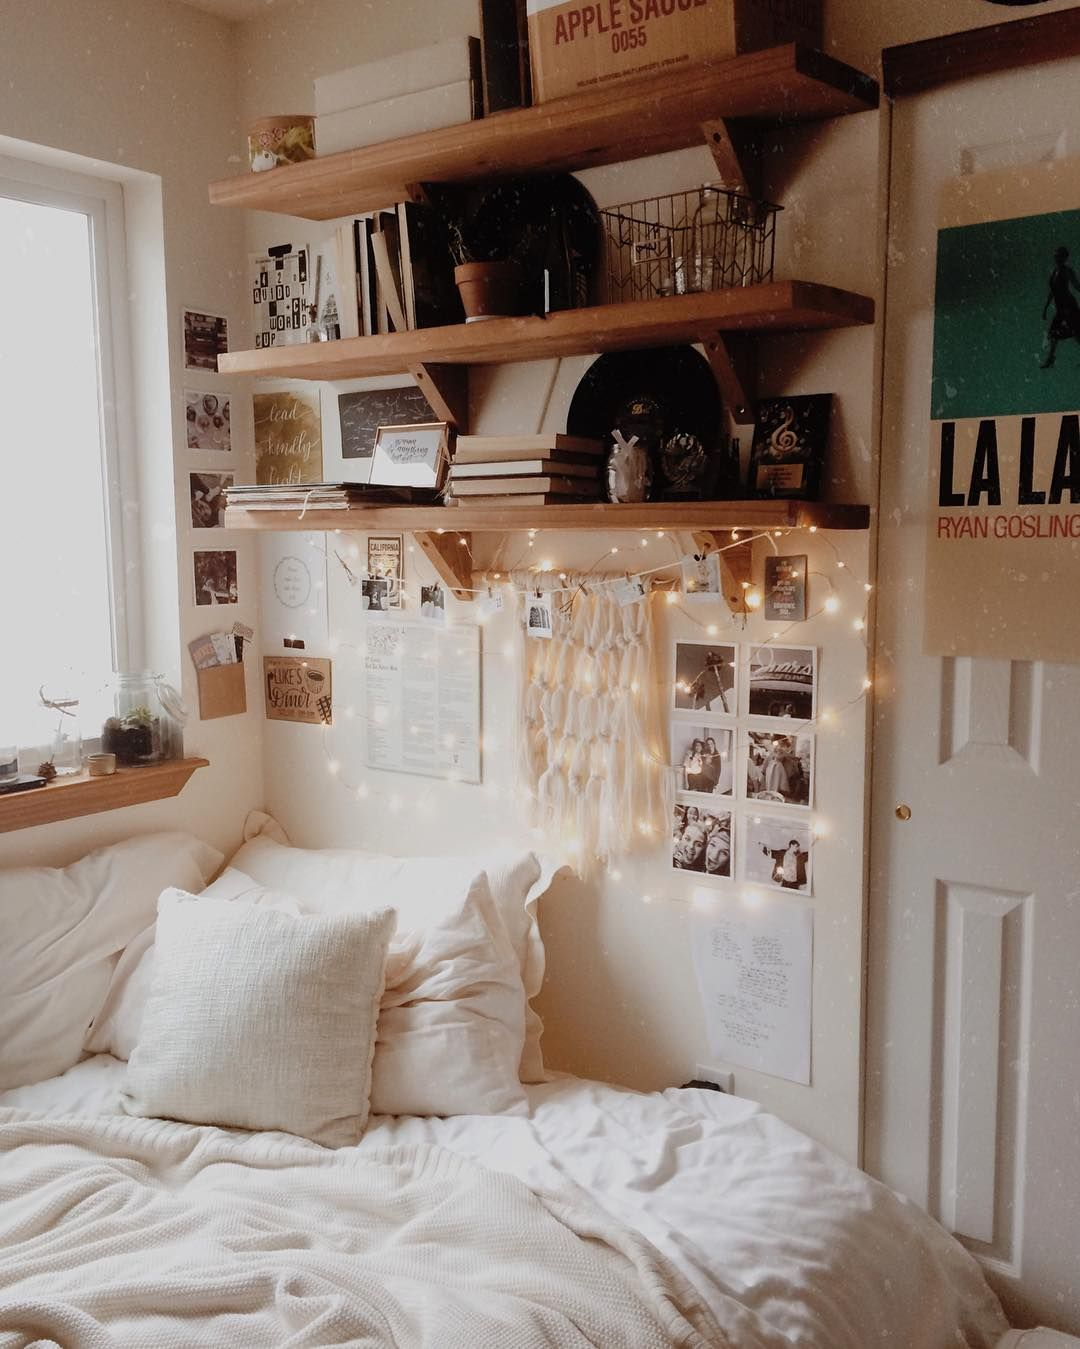 Pin by Rachel on Book | Pinterest | Bedroom, Room and Room Decor Decorating Shelves In Bedroom Tumblr on coffee bar in bedroom, corner shelf for bedroom, building shelves in bedroom, storage shelves in bedroom, shelf decor bedroom, ideas to decorate your bedroom, unique bookshelves for teenagers bedroom, display shelves in bedroom, metal shelves in bedroom, clothing shelves in bedroom, shelf for girls bedroom, decorative shelf bedroom, corner wall shelves modern bedroom, bay window in bedroom, built in bookshelves in bedroom, bathroom shelves in bedroom, built in shelves in master bedroom, decorating shelves for fall,